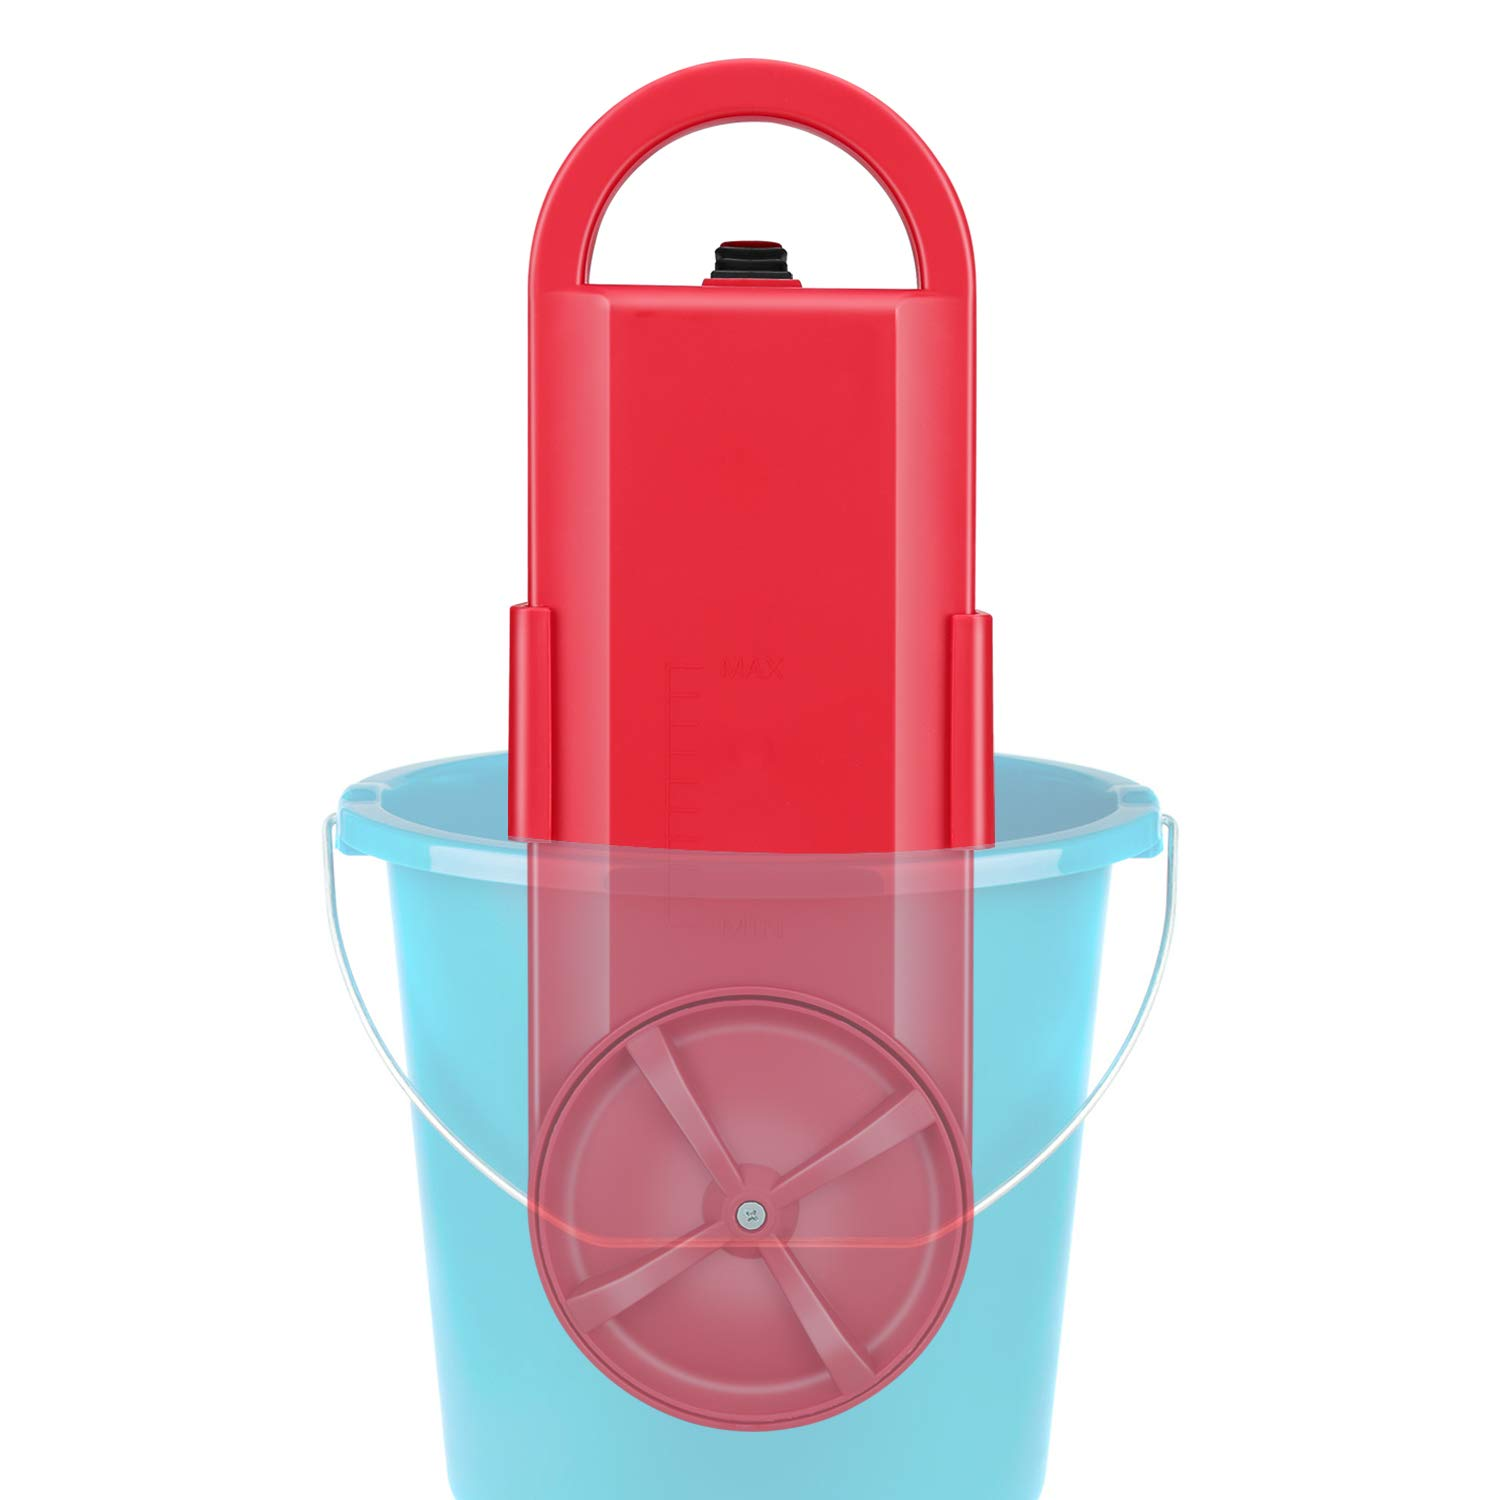 Portable Washing Machine | Handy Washing Machine | Mini Washer | Bucket Use | Travel & Outdoor Electric Compact Washer |Suitable for Single Person, Bachelors, Hostel Peoples | RED by Tonha by Tonha